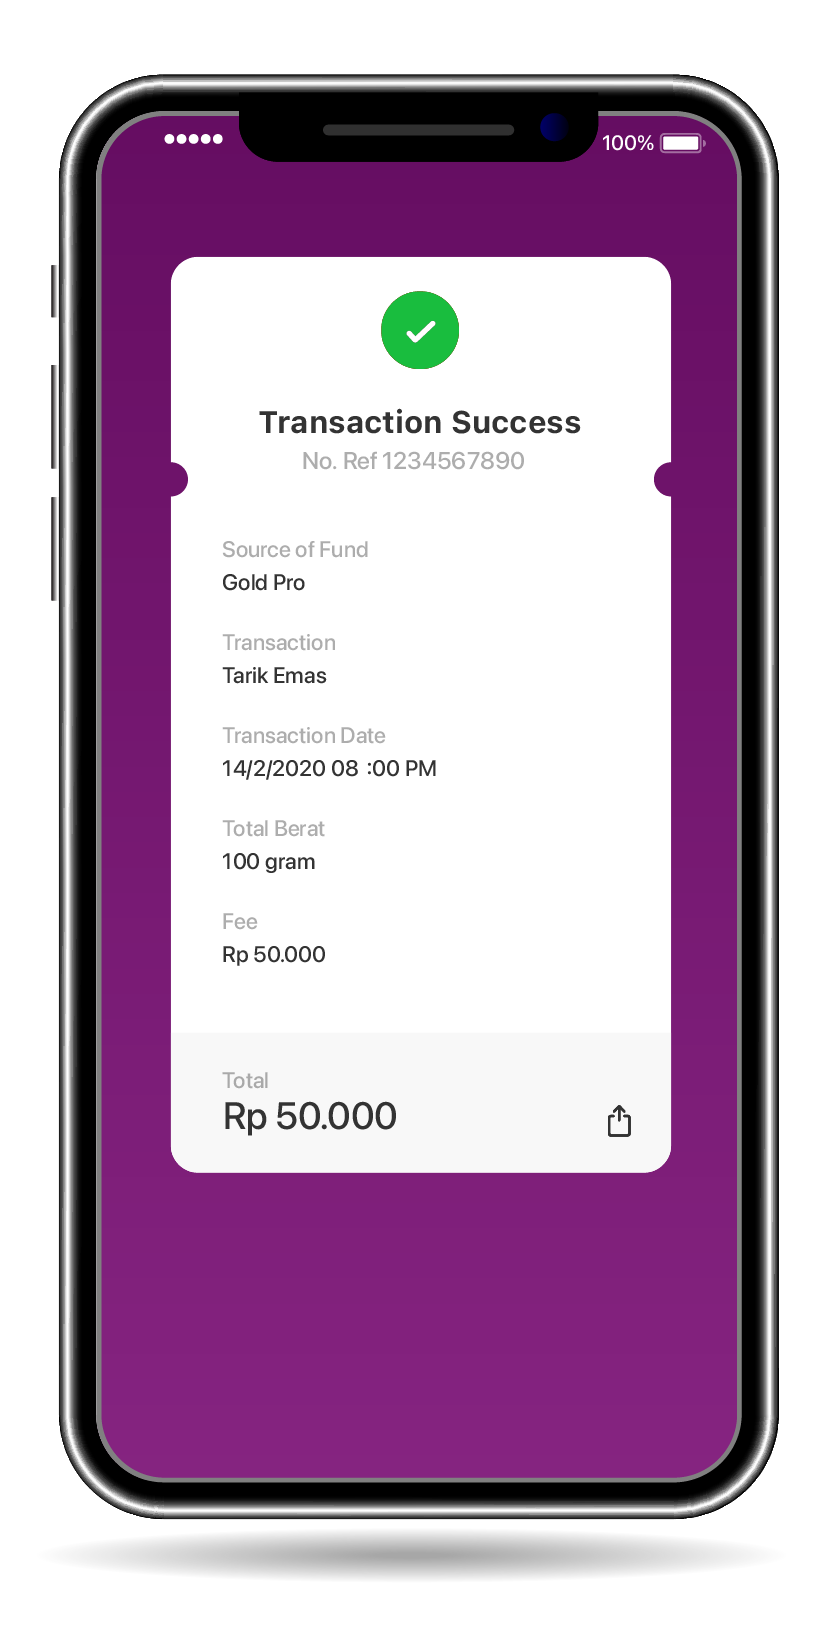 Notification will appear if transaction is successful